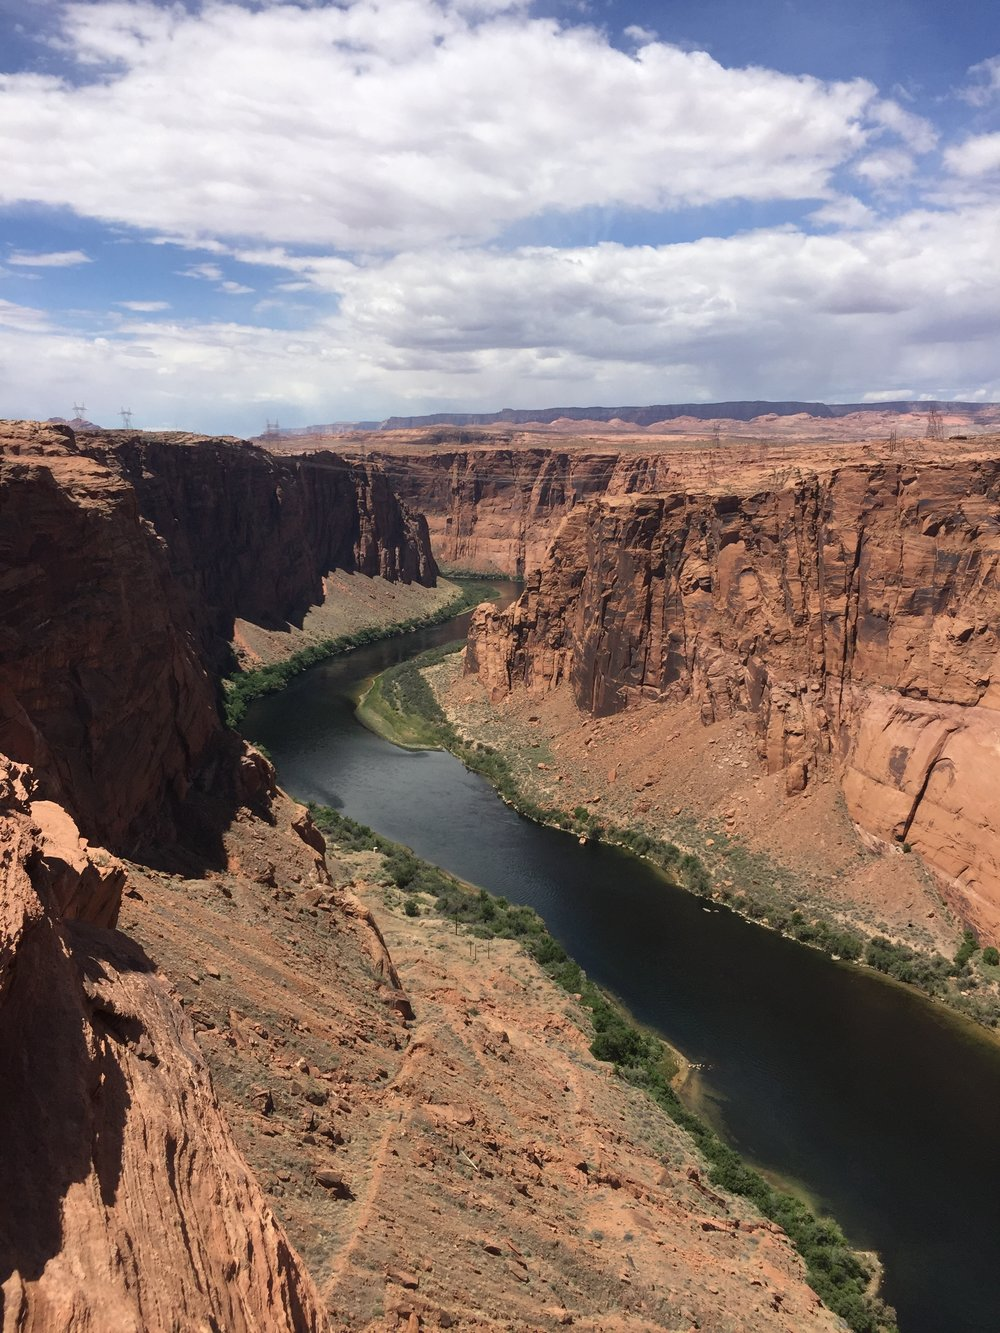 View of the Colorado River from the Glen Canyon Dam Overlook in Page, Arizona